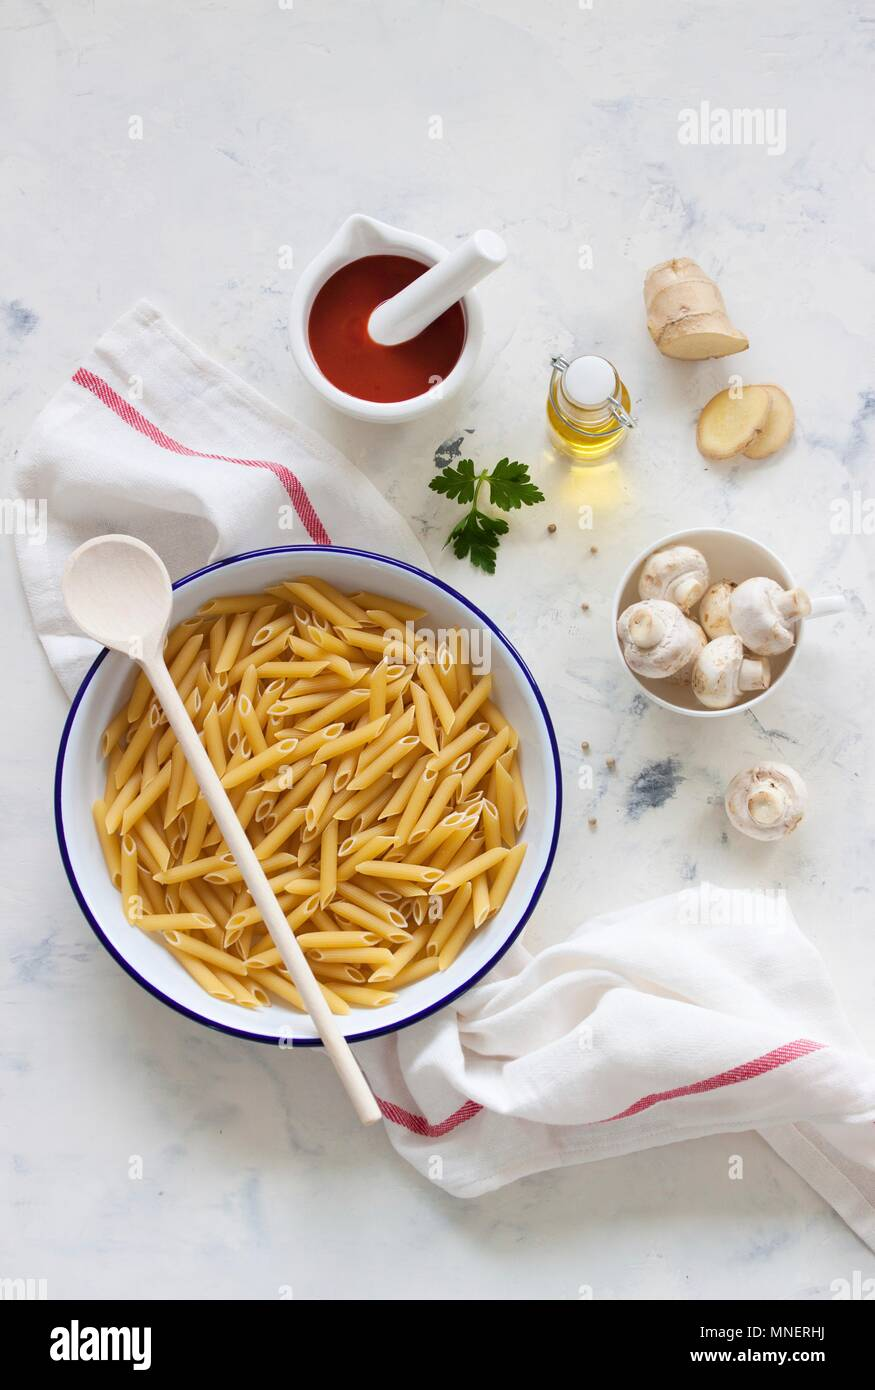 Ingredients for a pasta dish: penne, mushrooms, sieved tomatoes, olive oil and Ginger - Stock Image